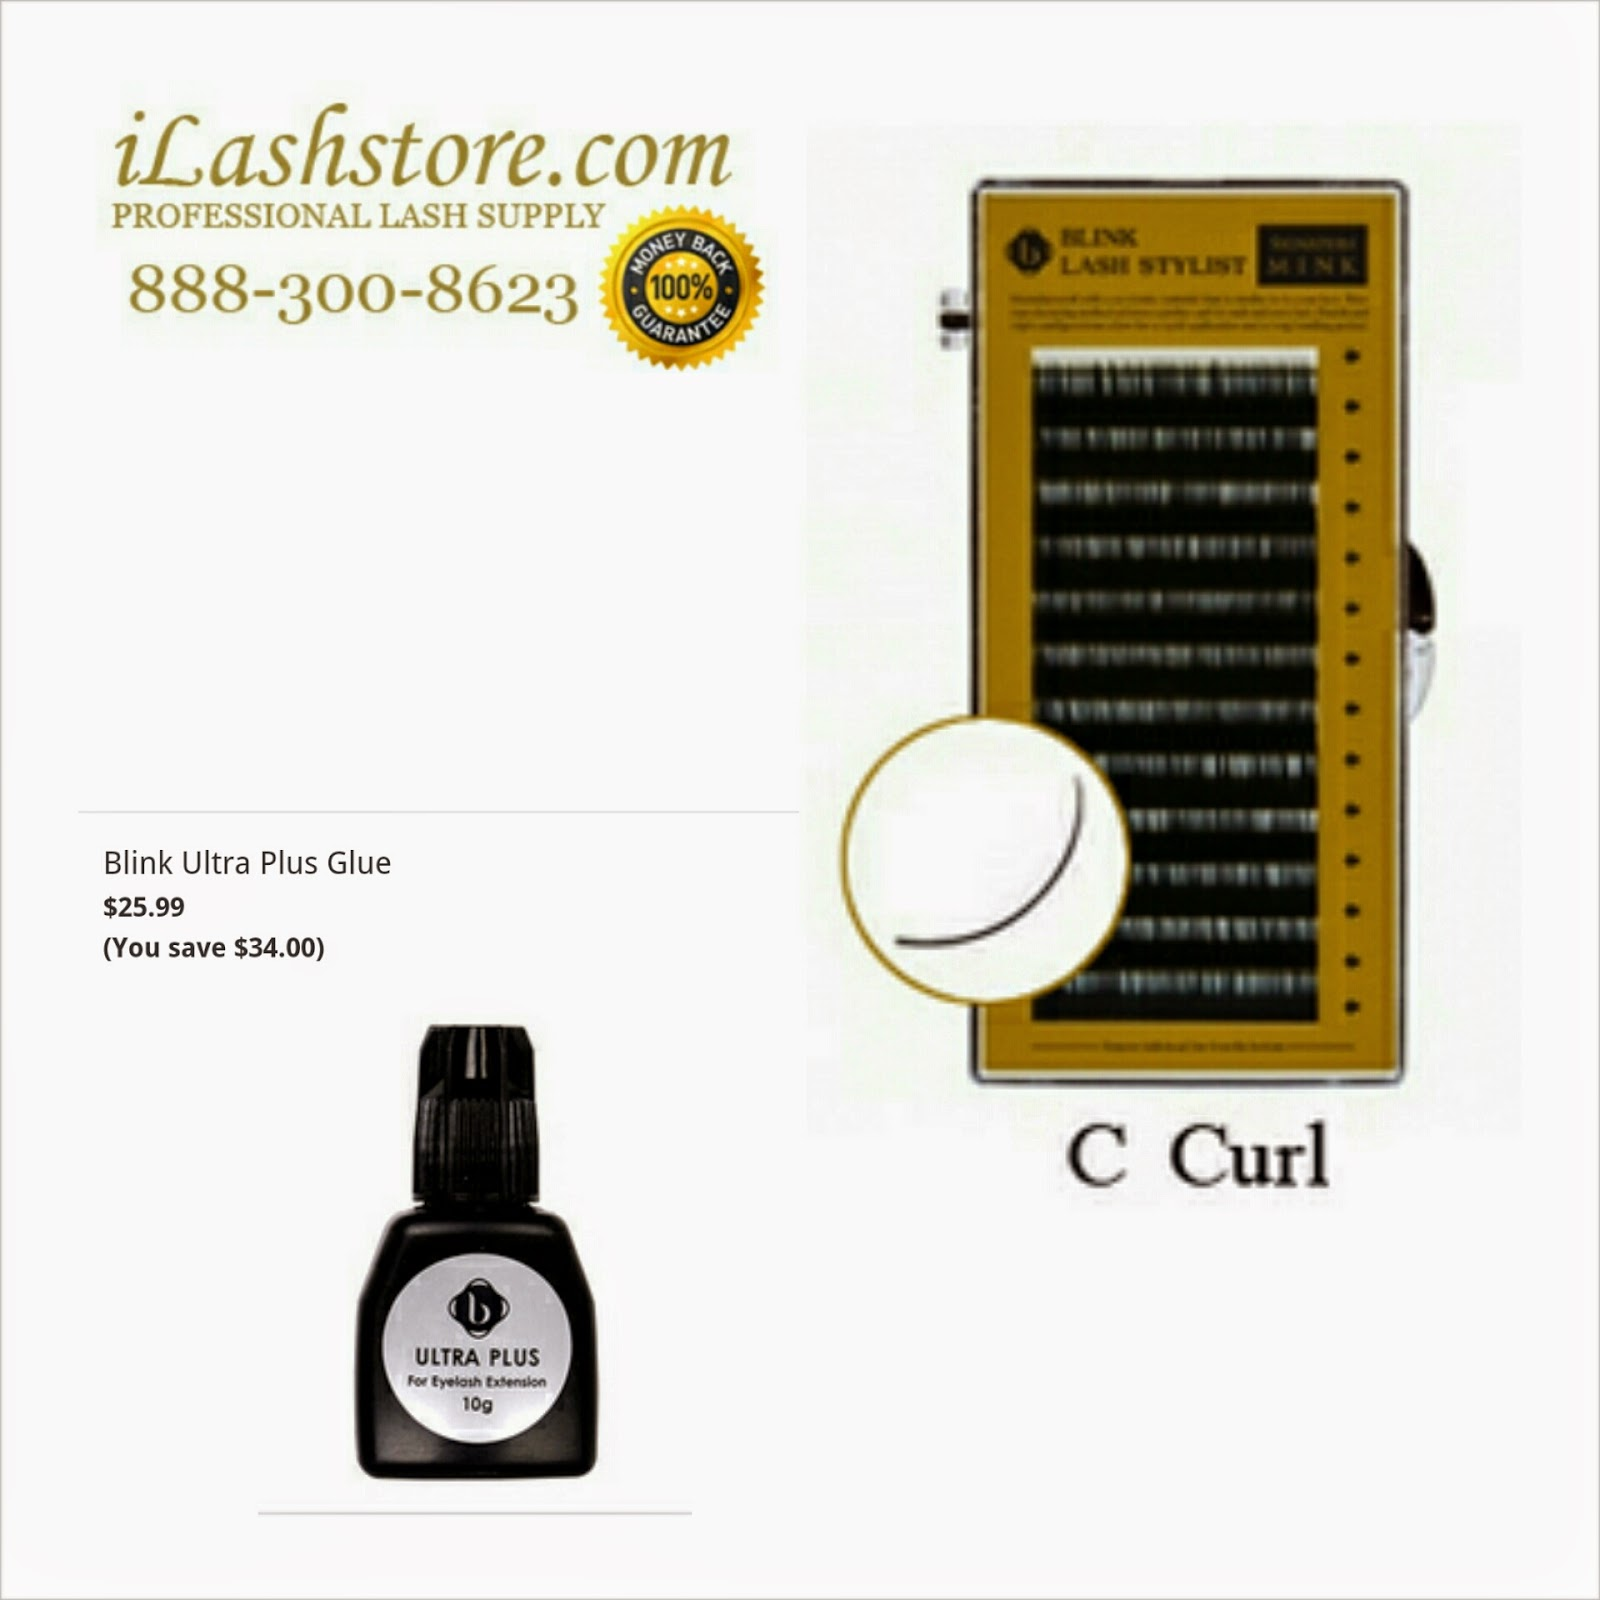 8bd92d9809a It can be purchased from its direct site iLashstore.com or from Amazon.com.  We purchase the faux mink C-curl lash extensions ...